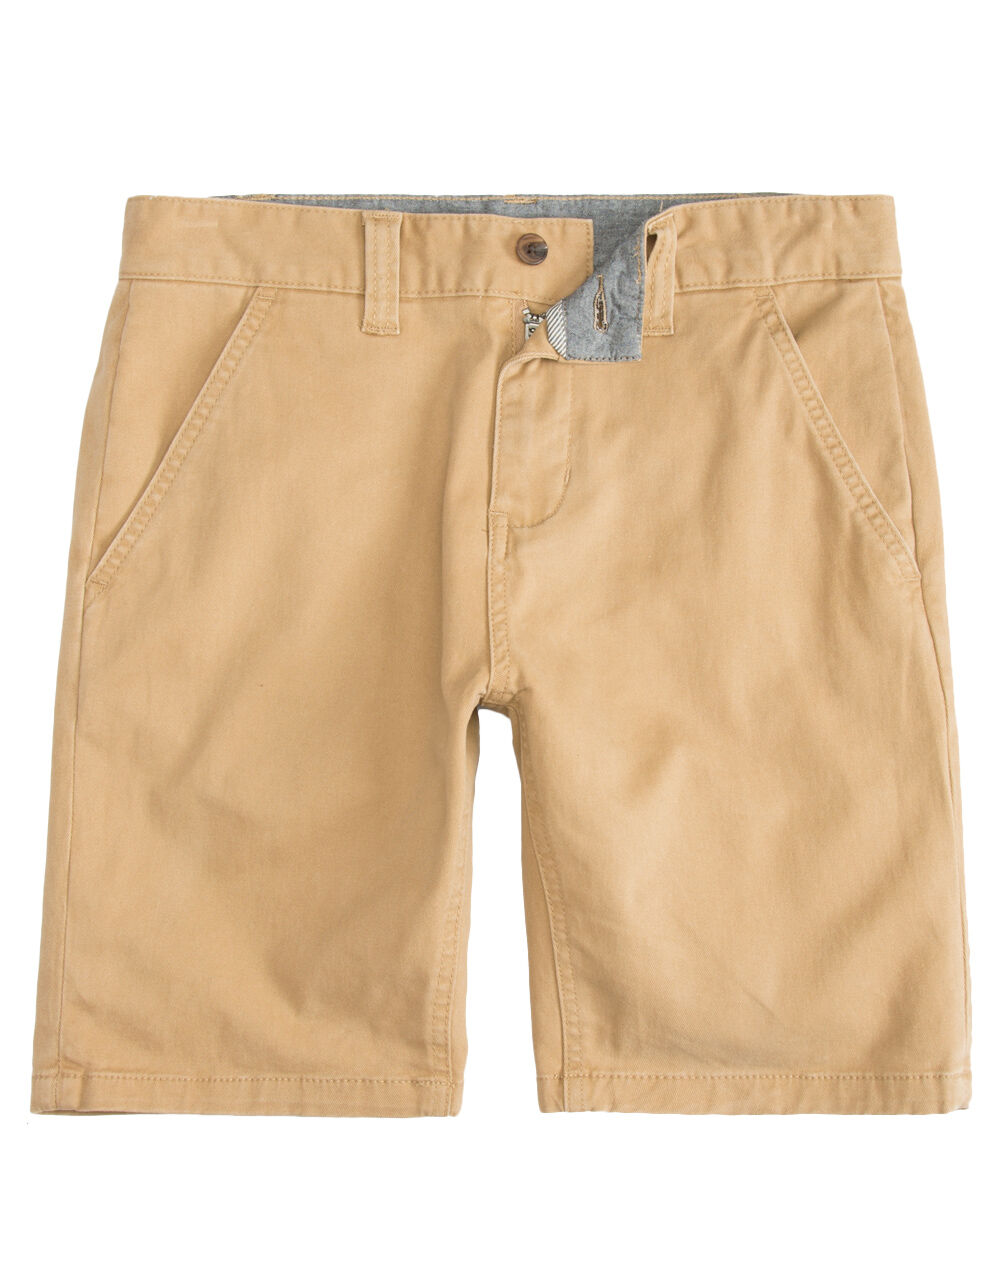 Image of CHARLES AND A HALF LINCOLN STRETCH DARK KHAKI SHORTS